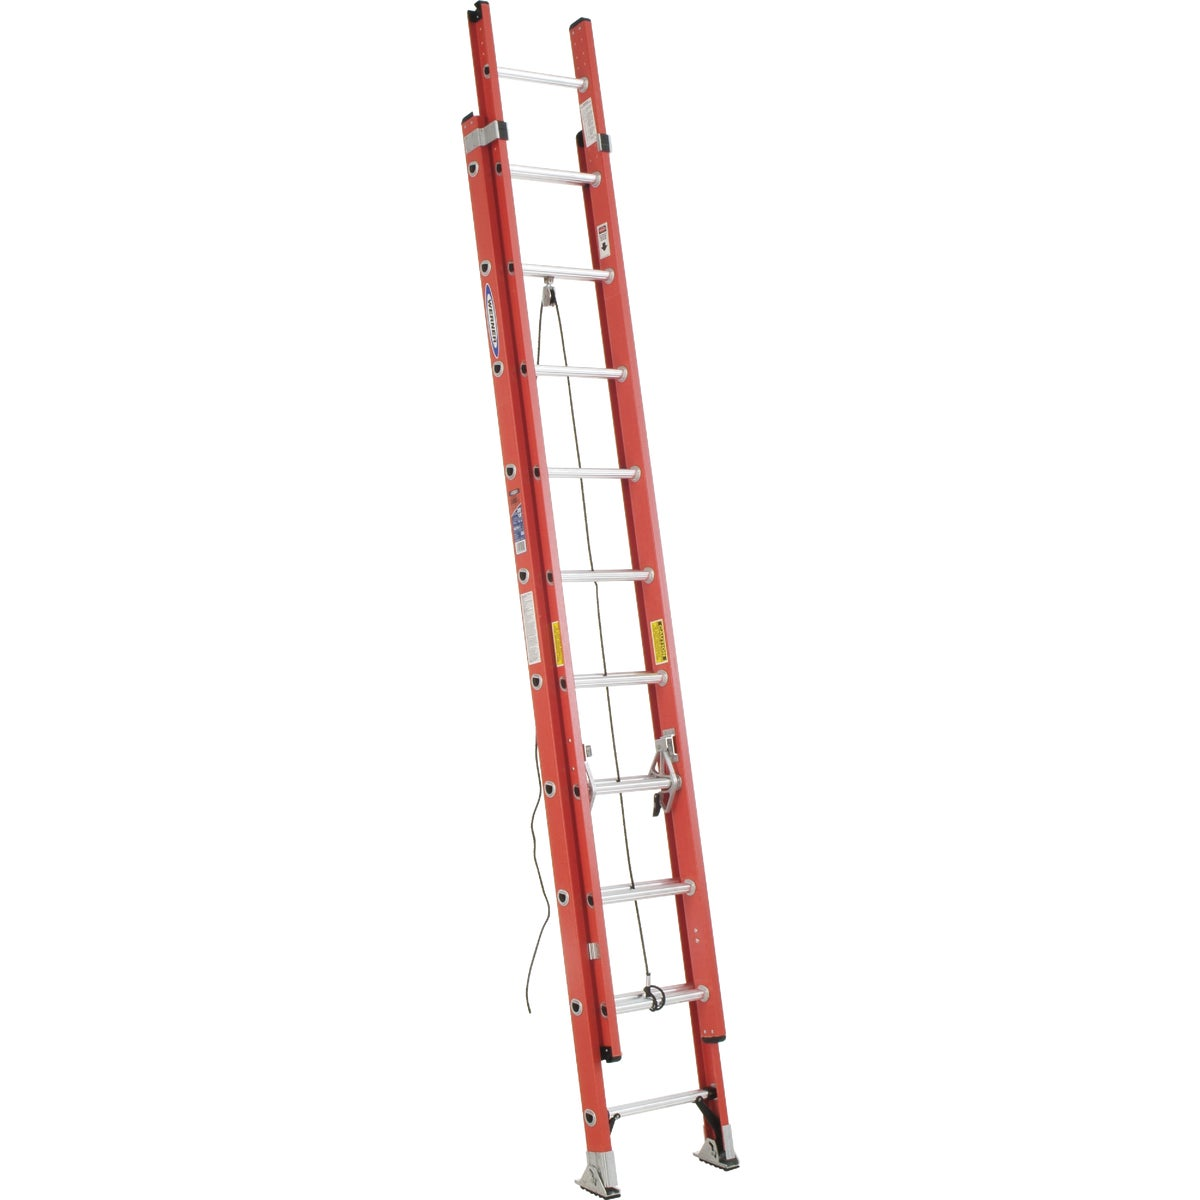 T-1A 20' FBGL EXT LADDER